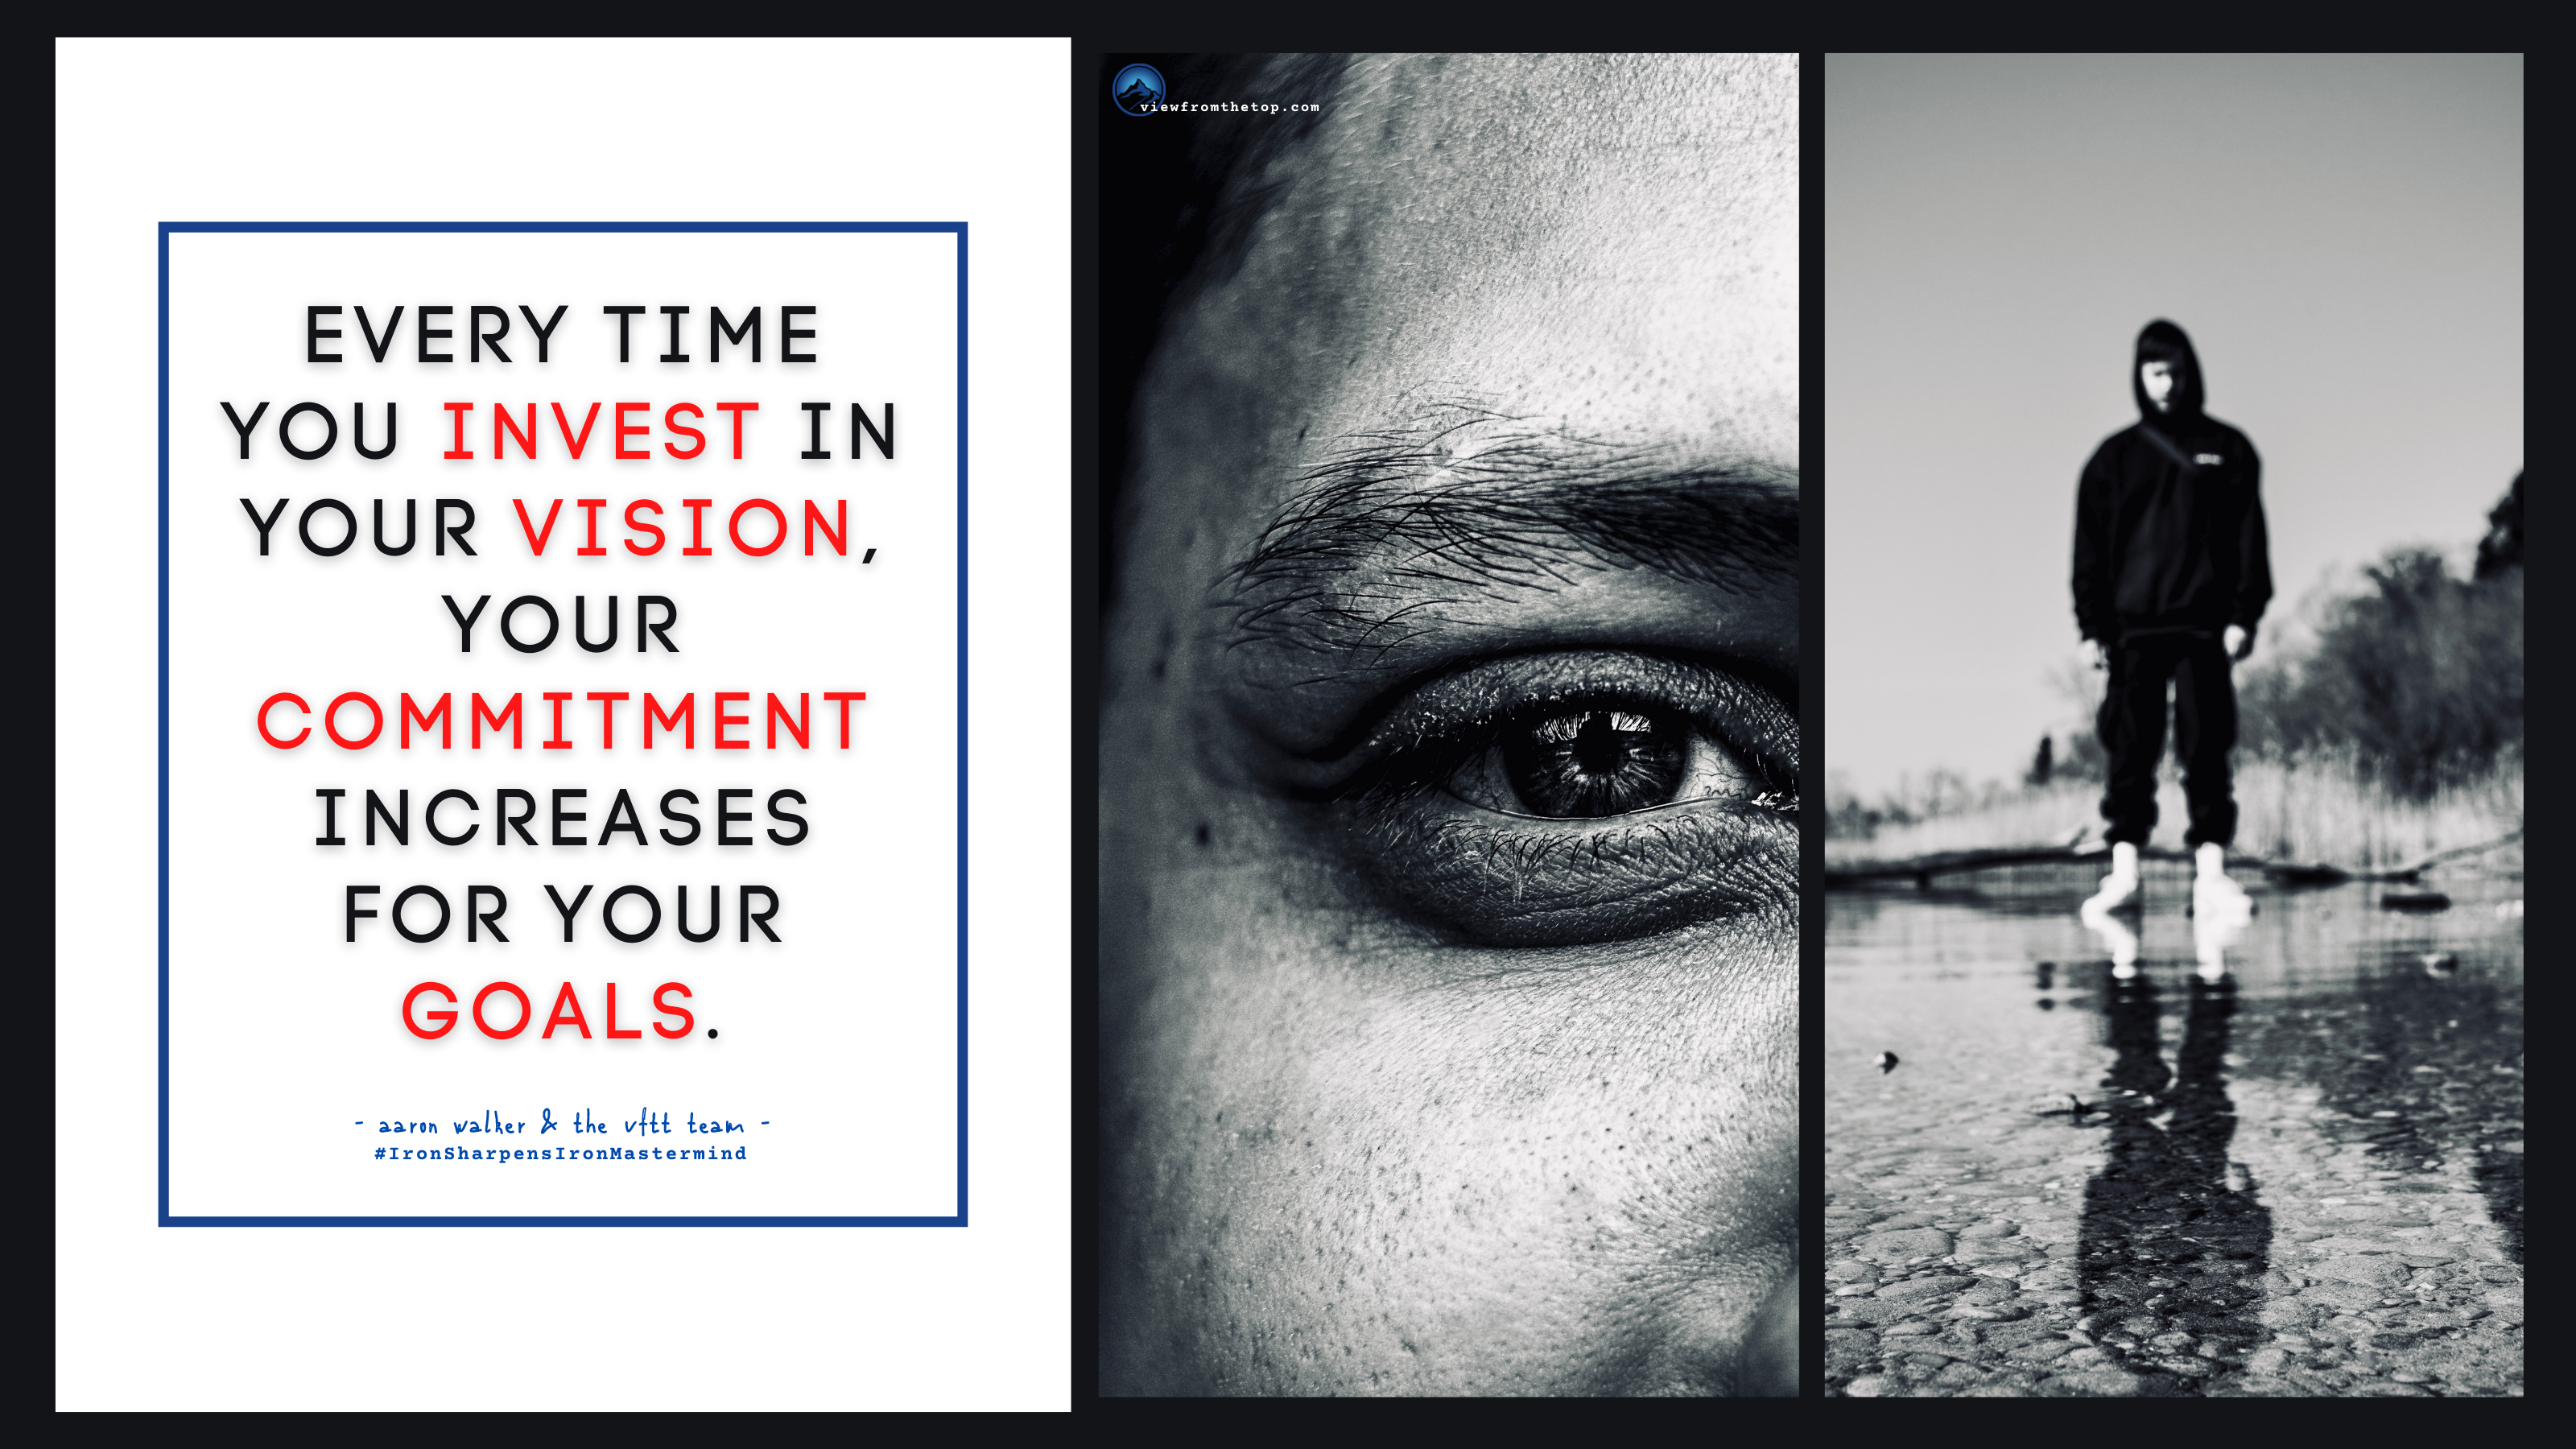 Every time you invest in your vision, your commitment increases for your goals. (2)